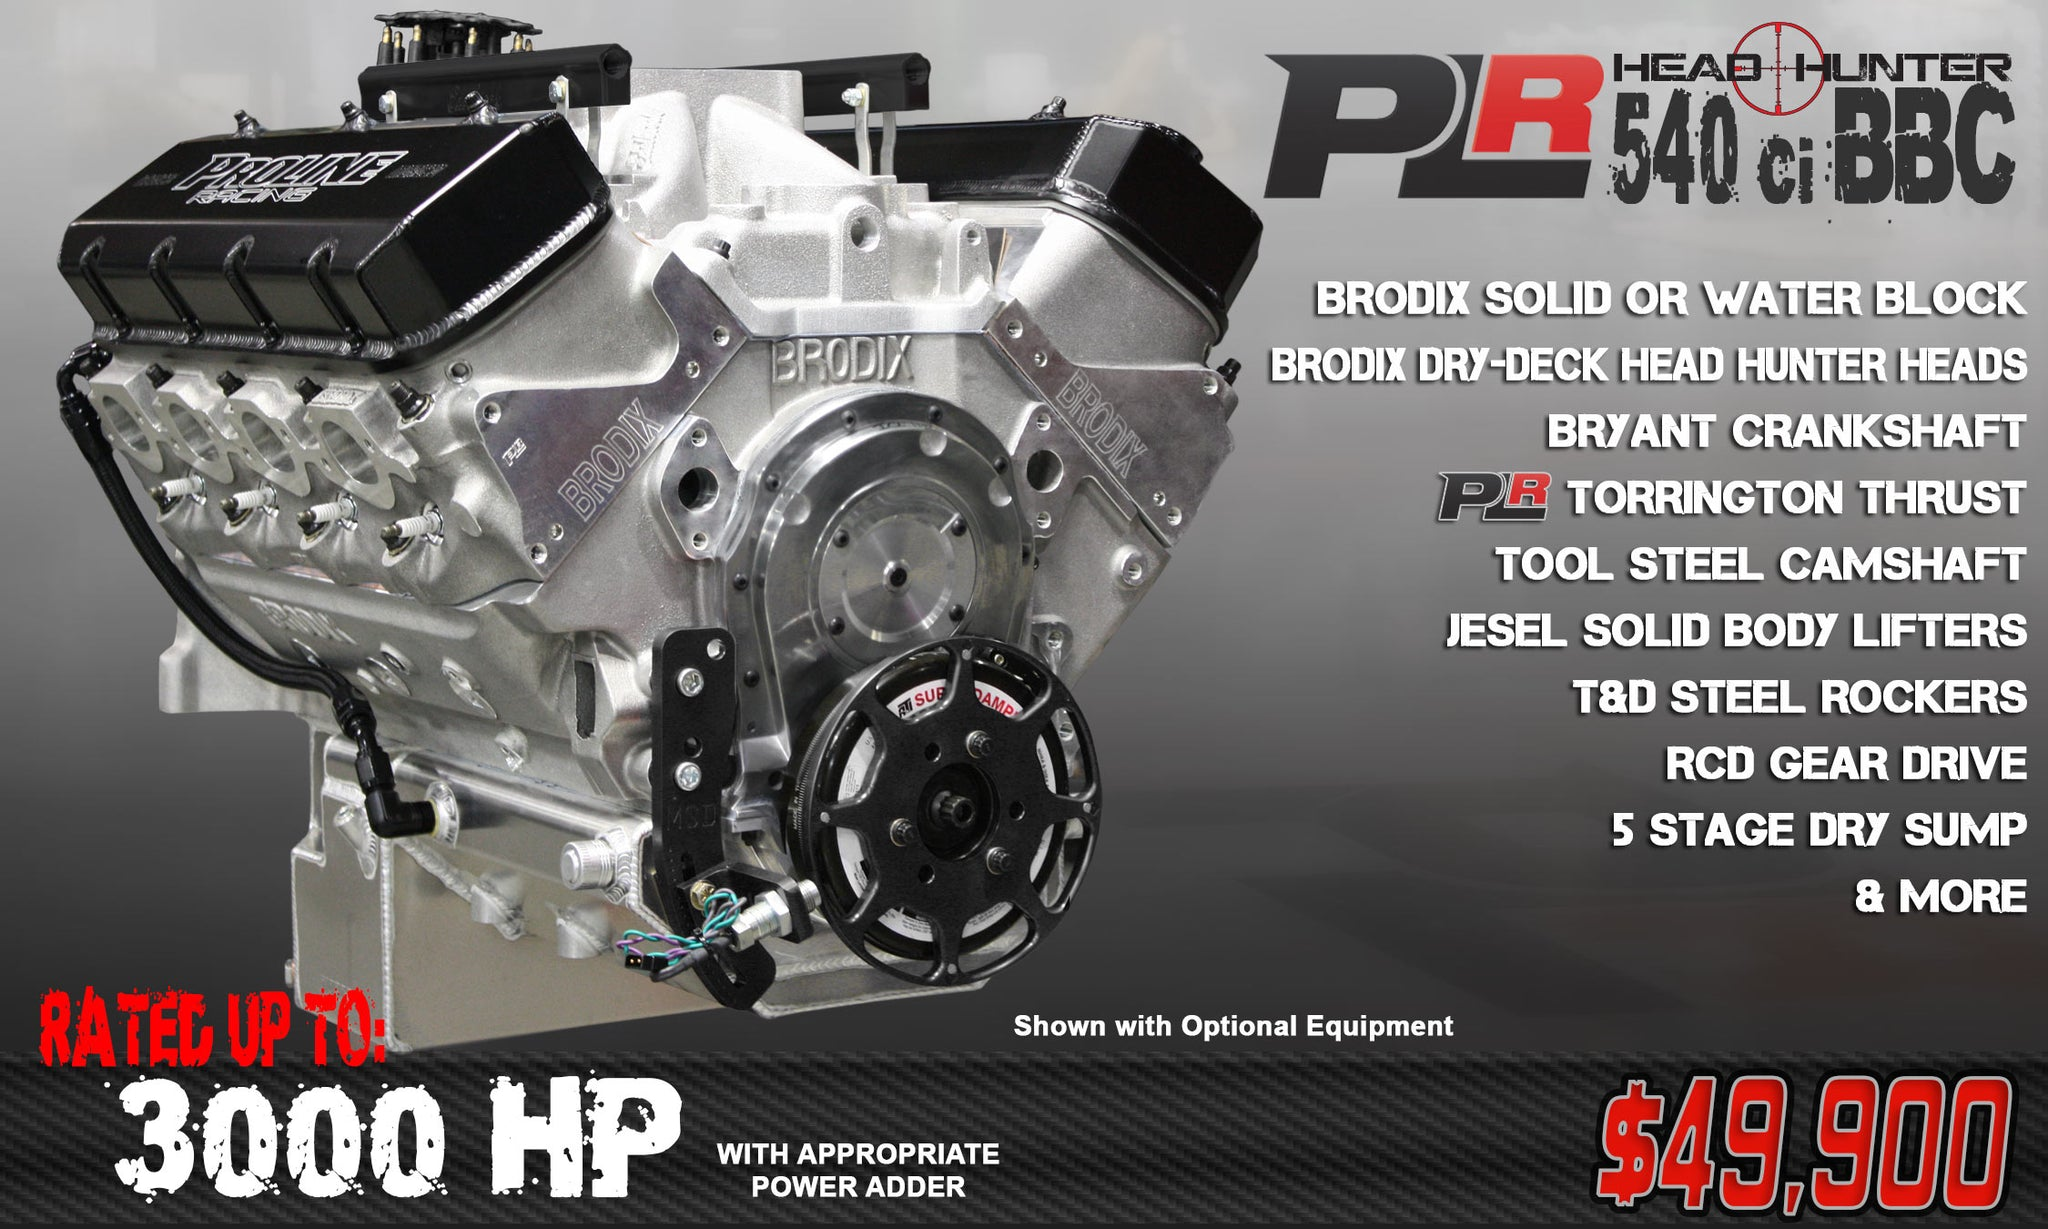 PLR 540 BBC HEAD HUNTER 3000 HP - Pro Line Racing